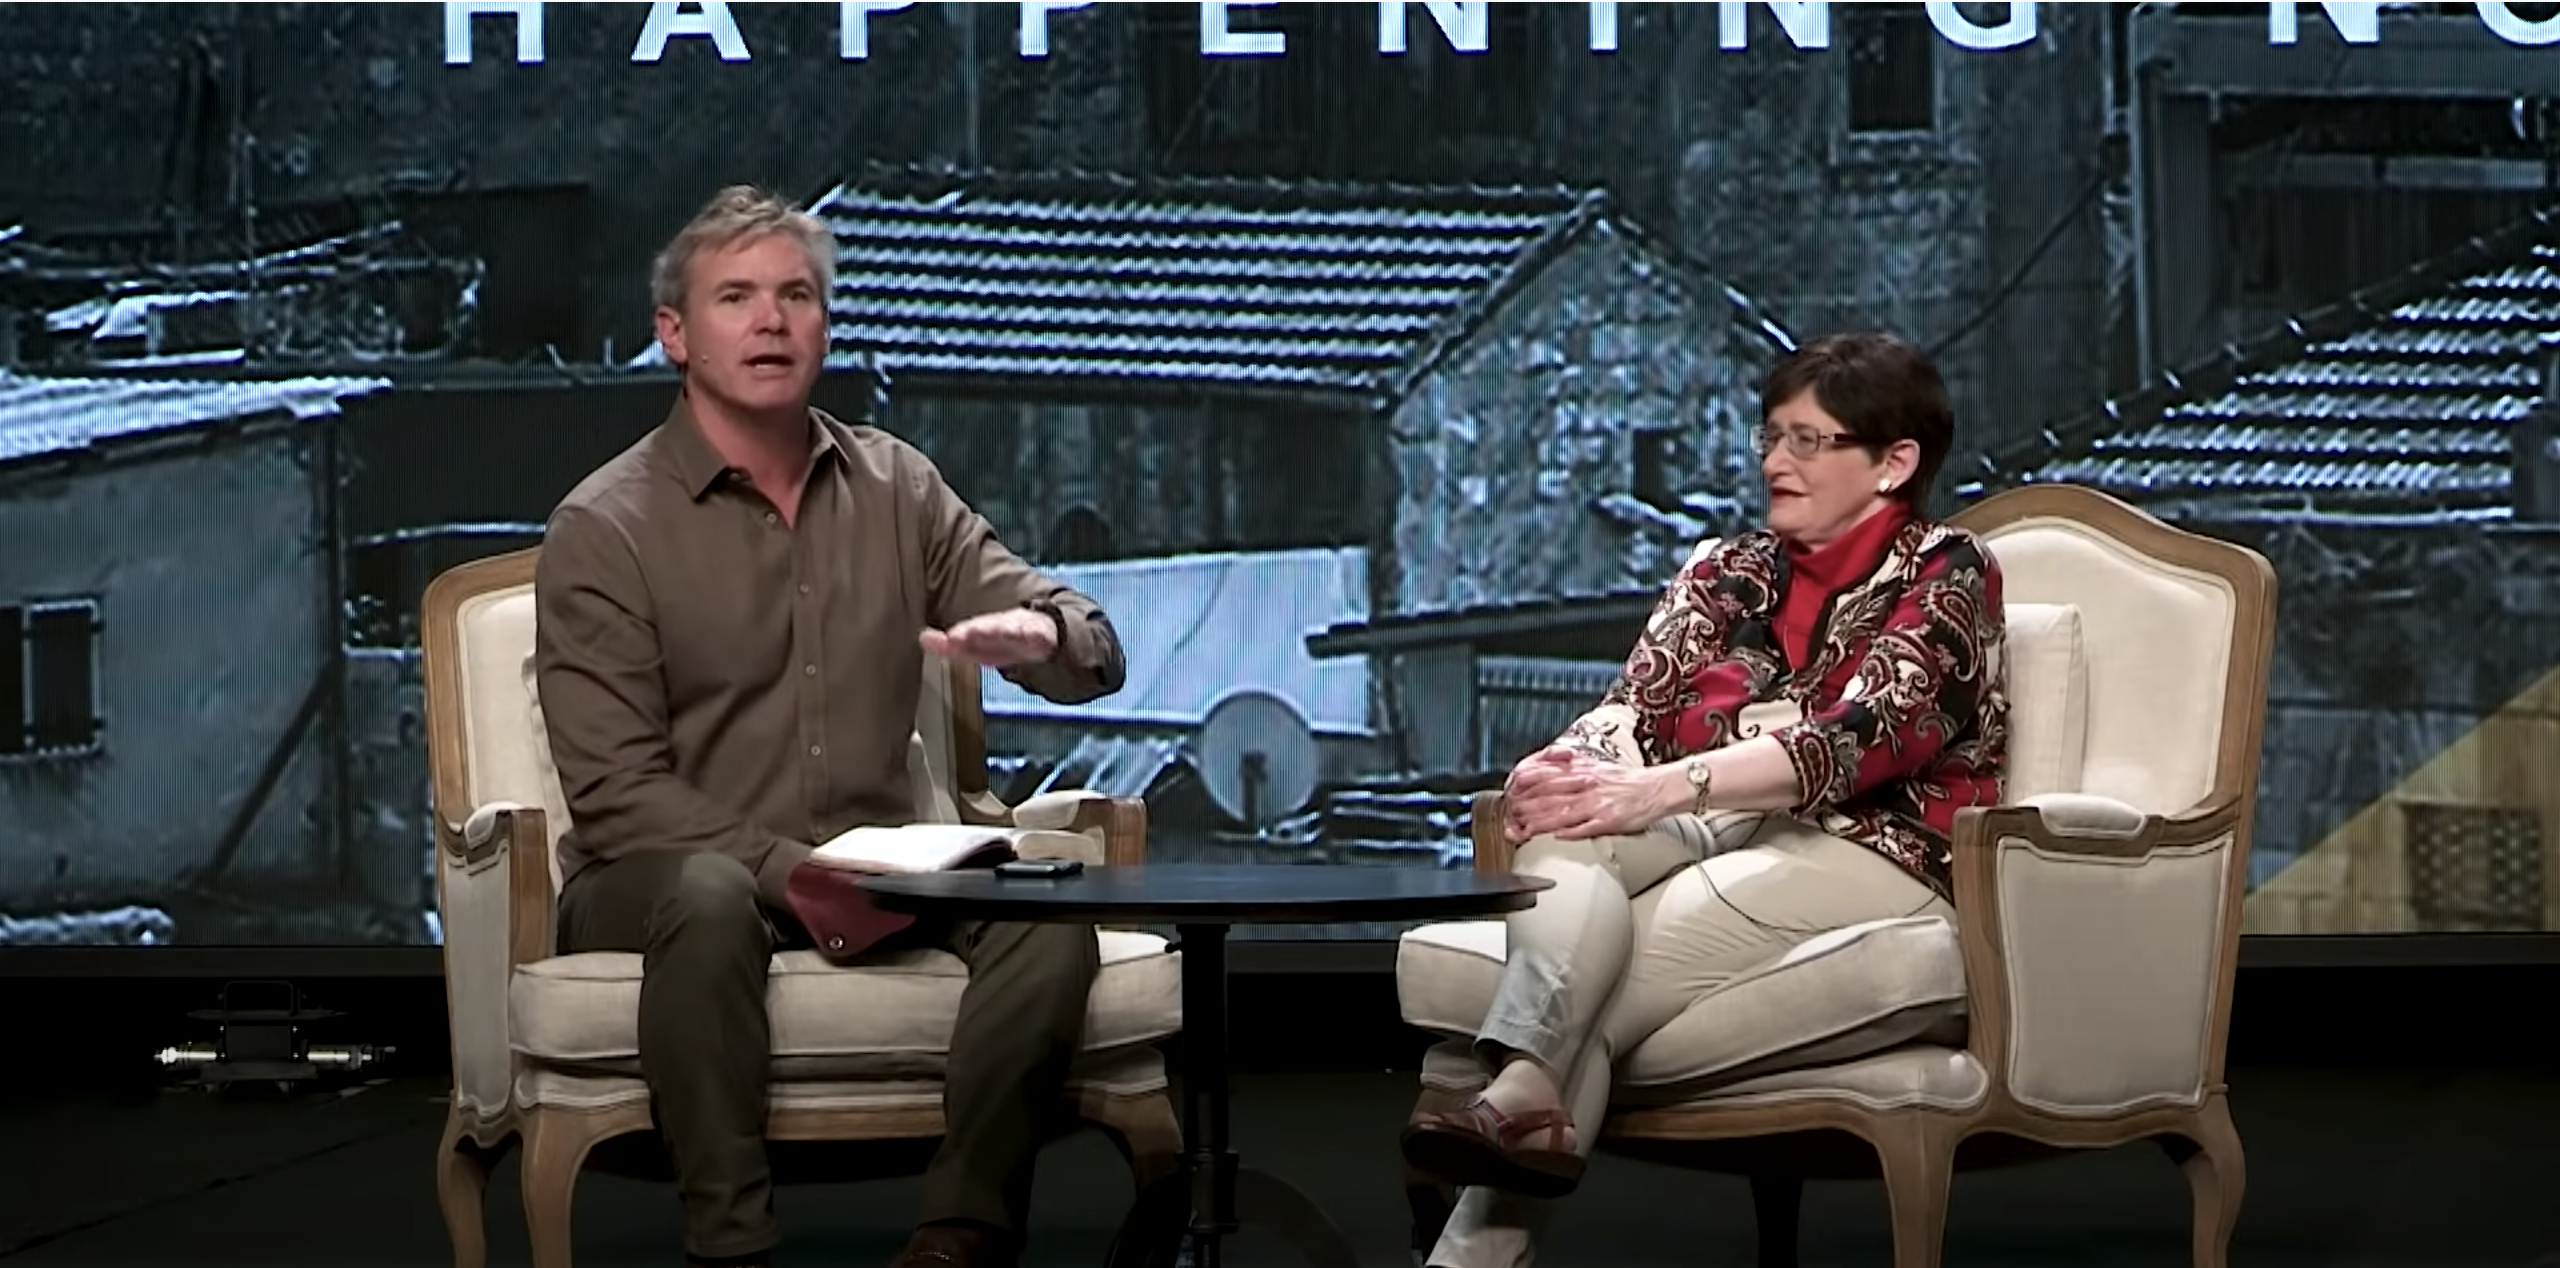 Part 11:  Pastor Jack & Jan Markell